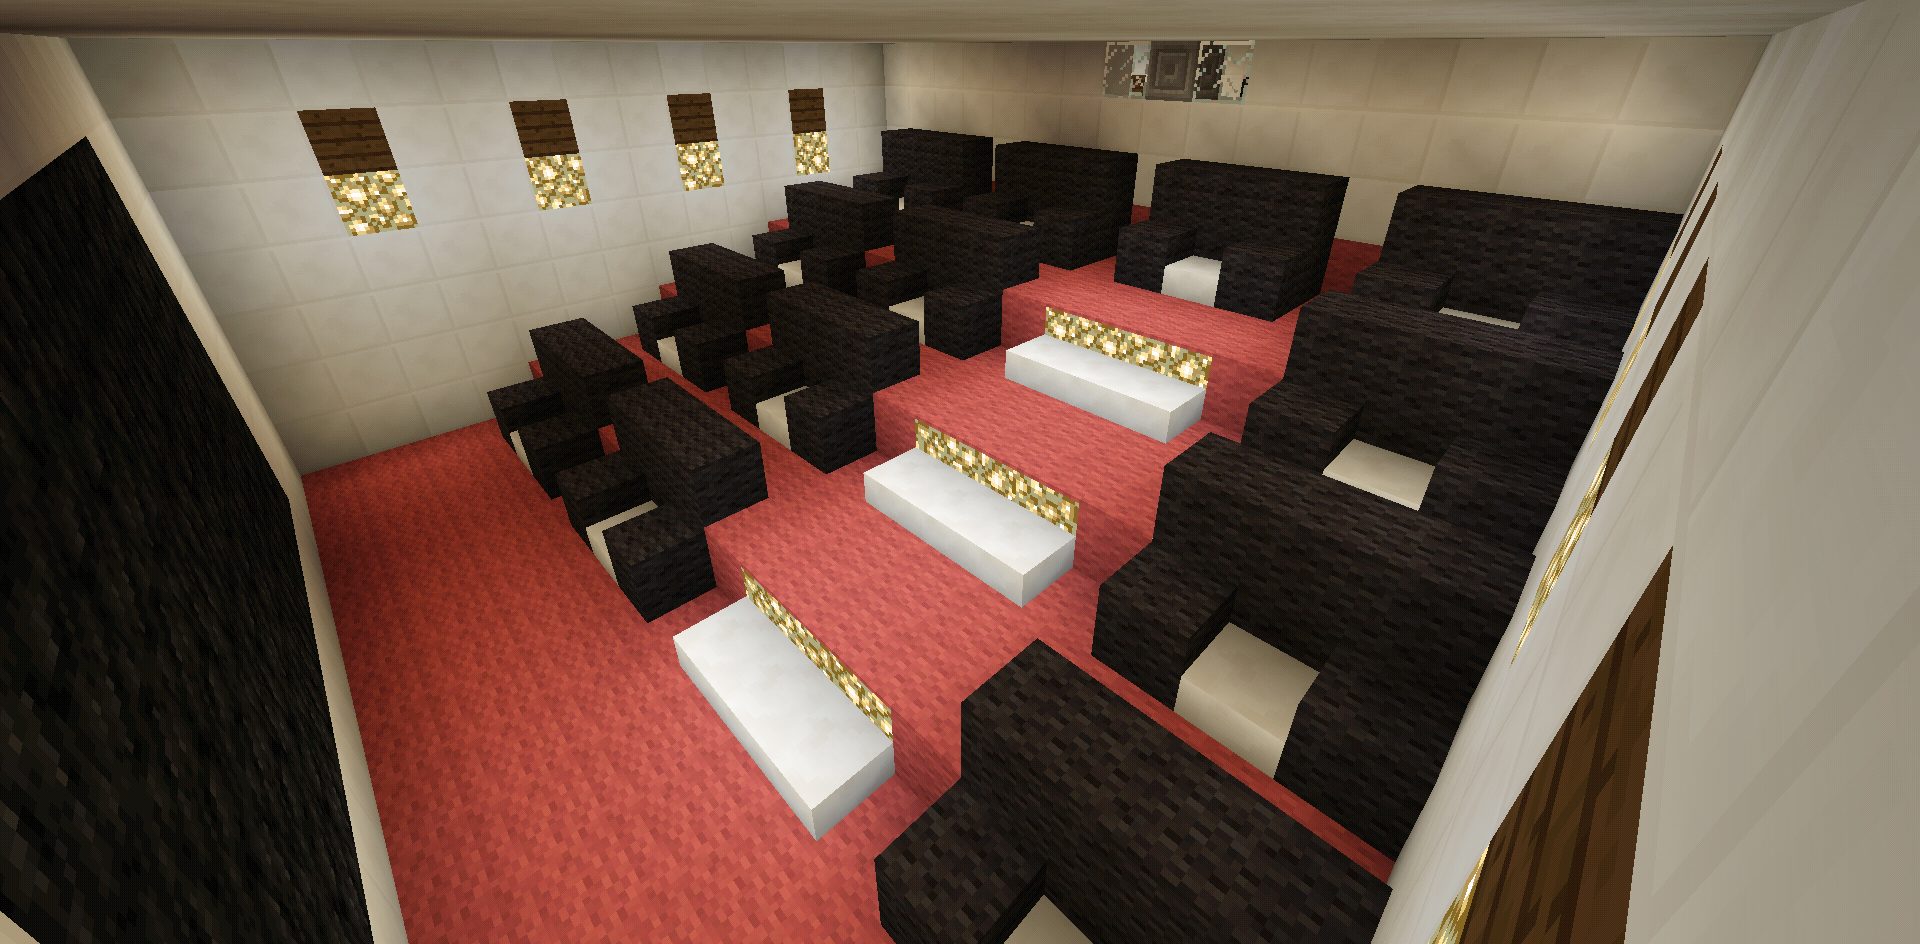 Minecraft home movie theater entertainment room creations minecraftfurniture also rh pinterest